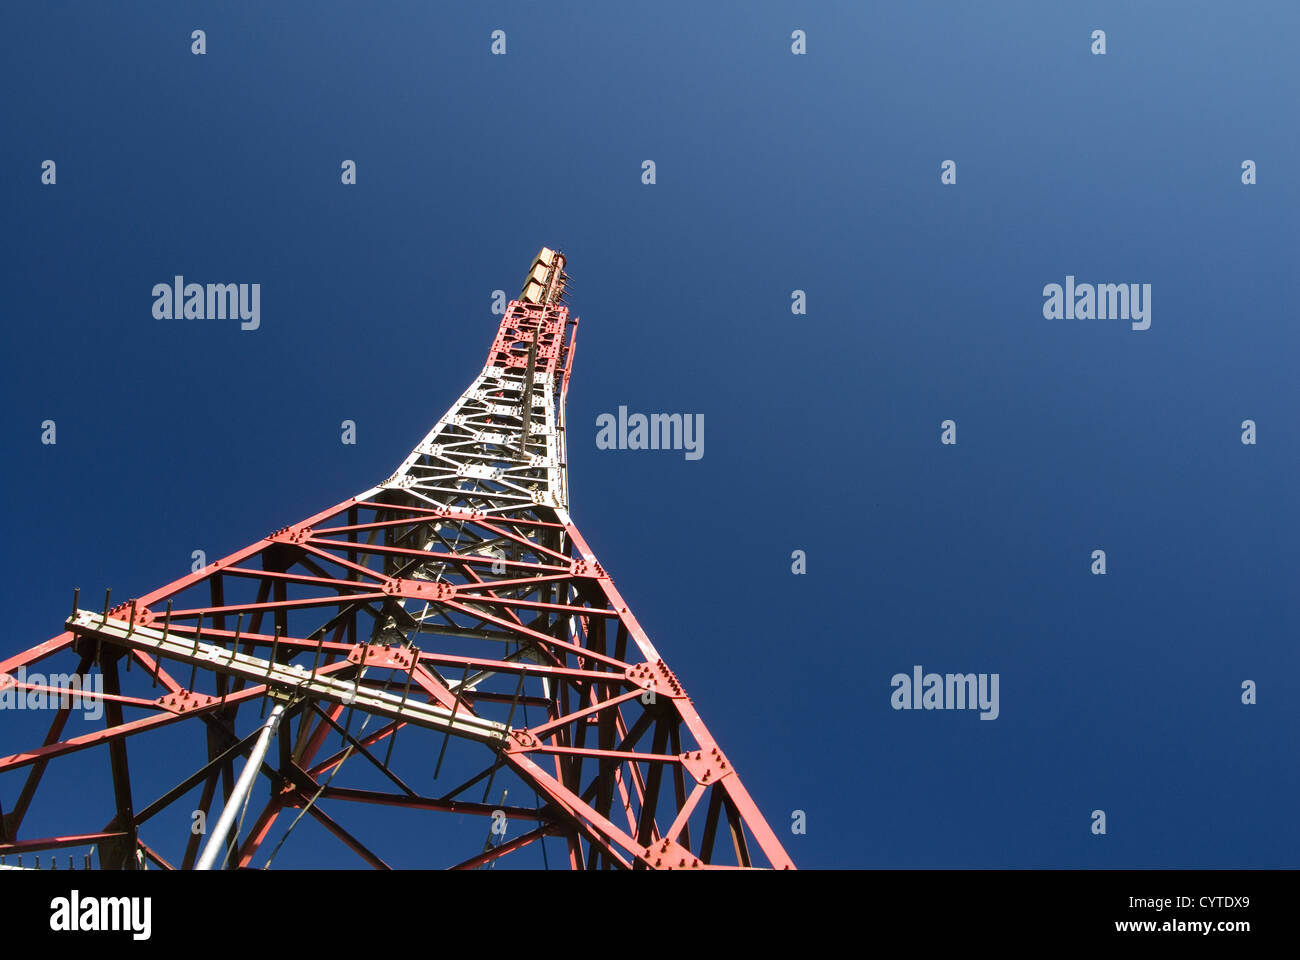 It is a discard of electronic tower. - Stock Image